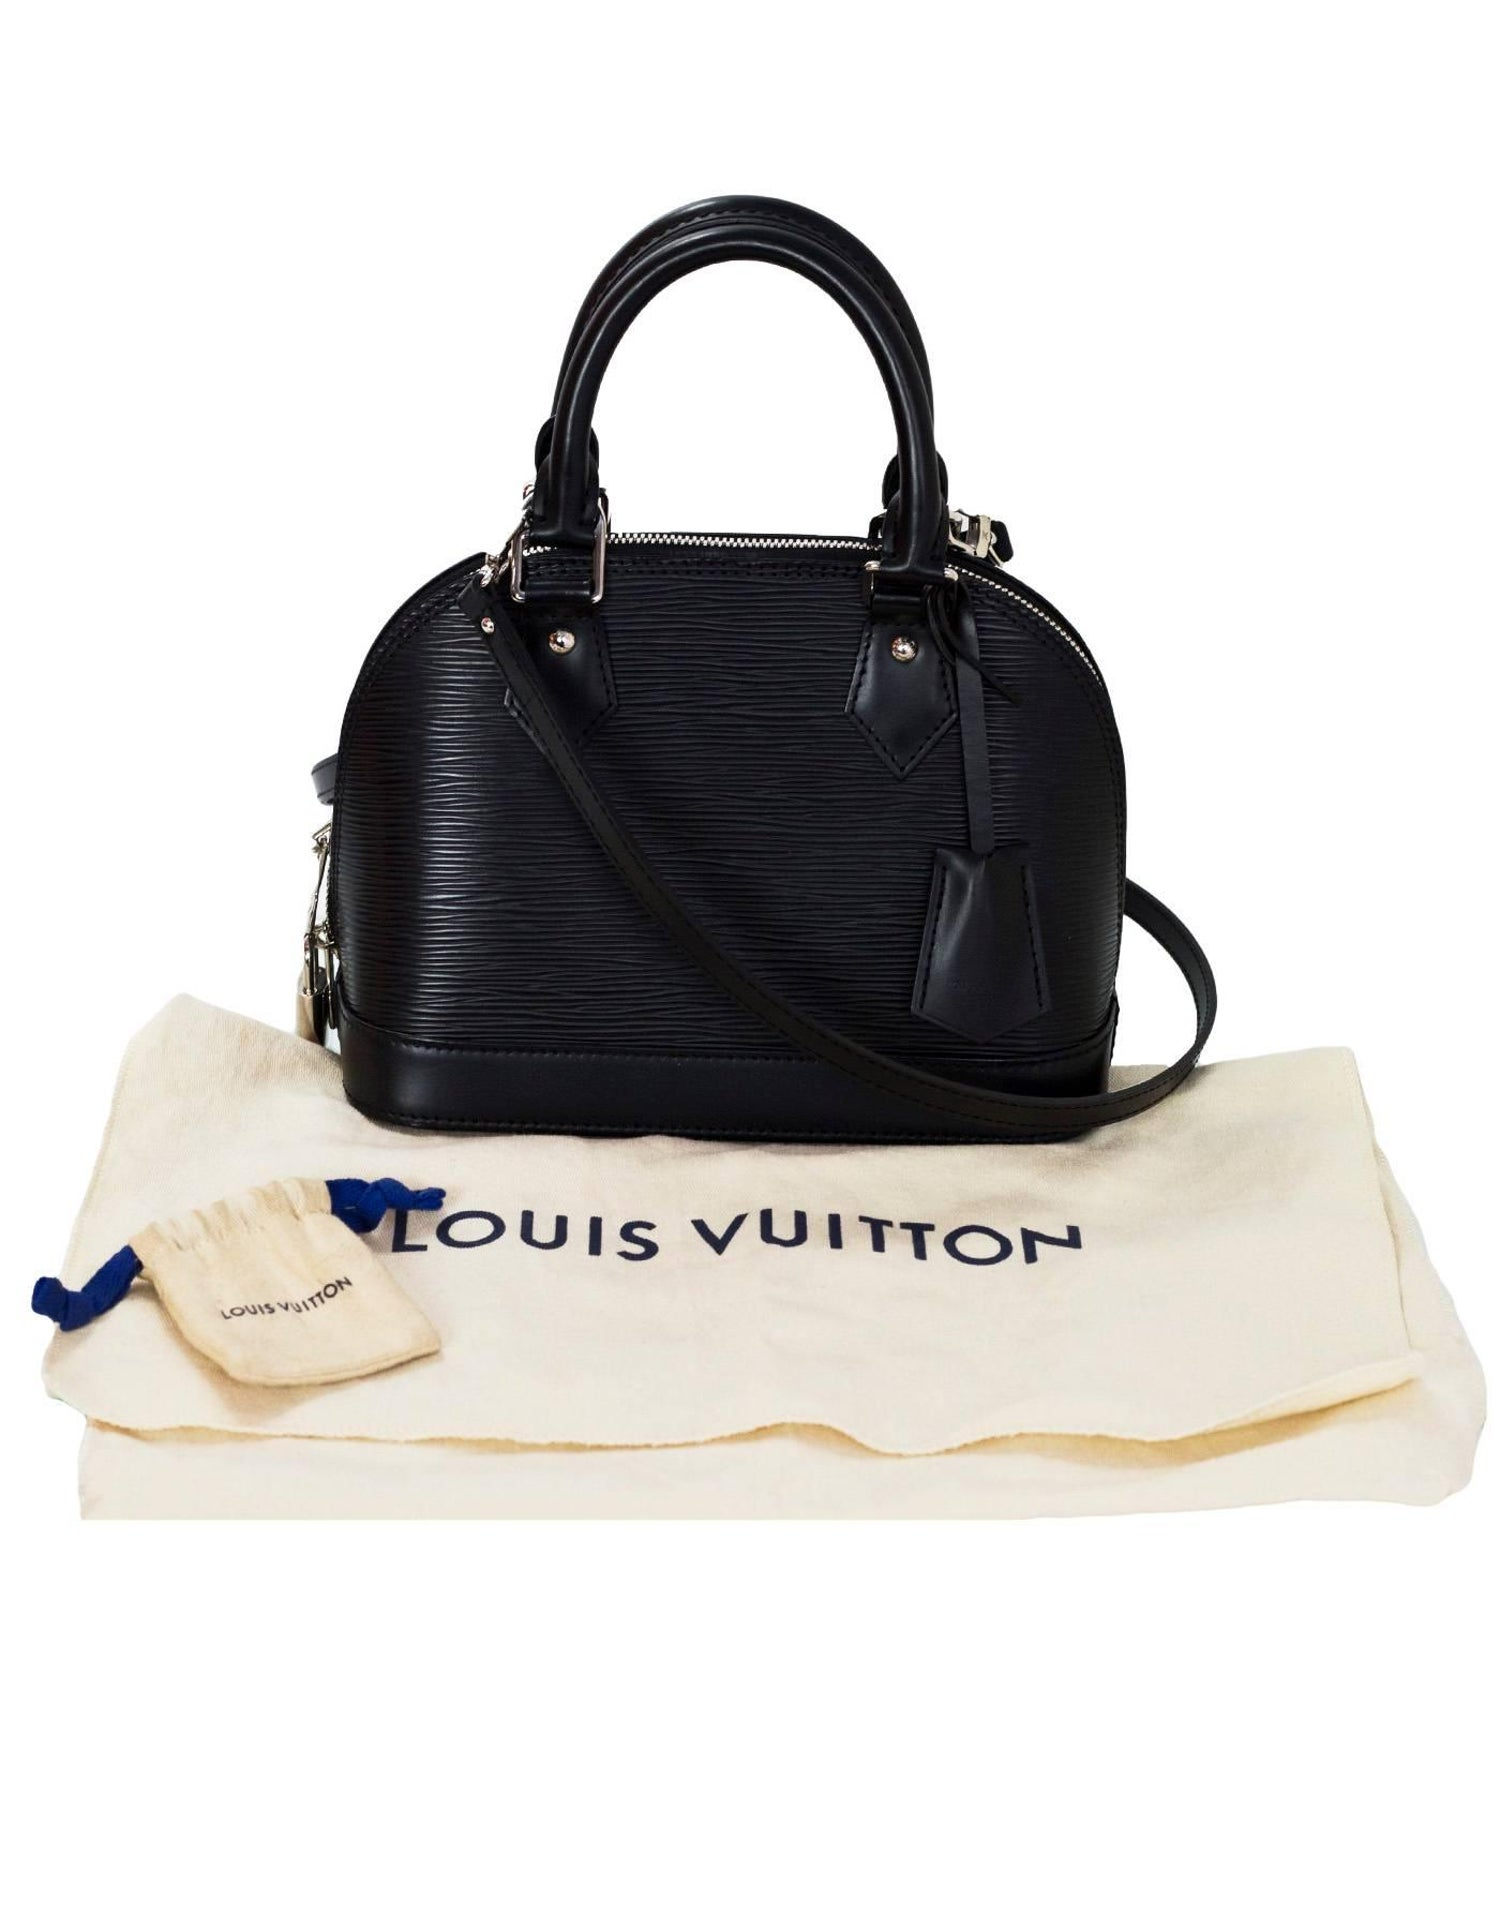 ce34ed98f7b9 Louis Vuitton Black Noir Epi Leather Alma BB Crossbody Bag For Sale at  1stdibs